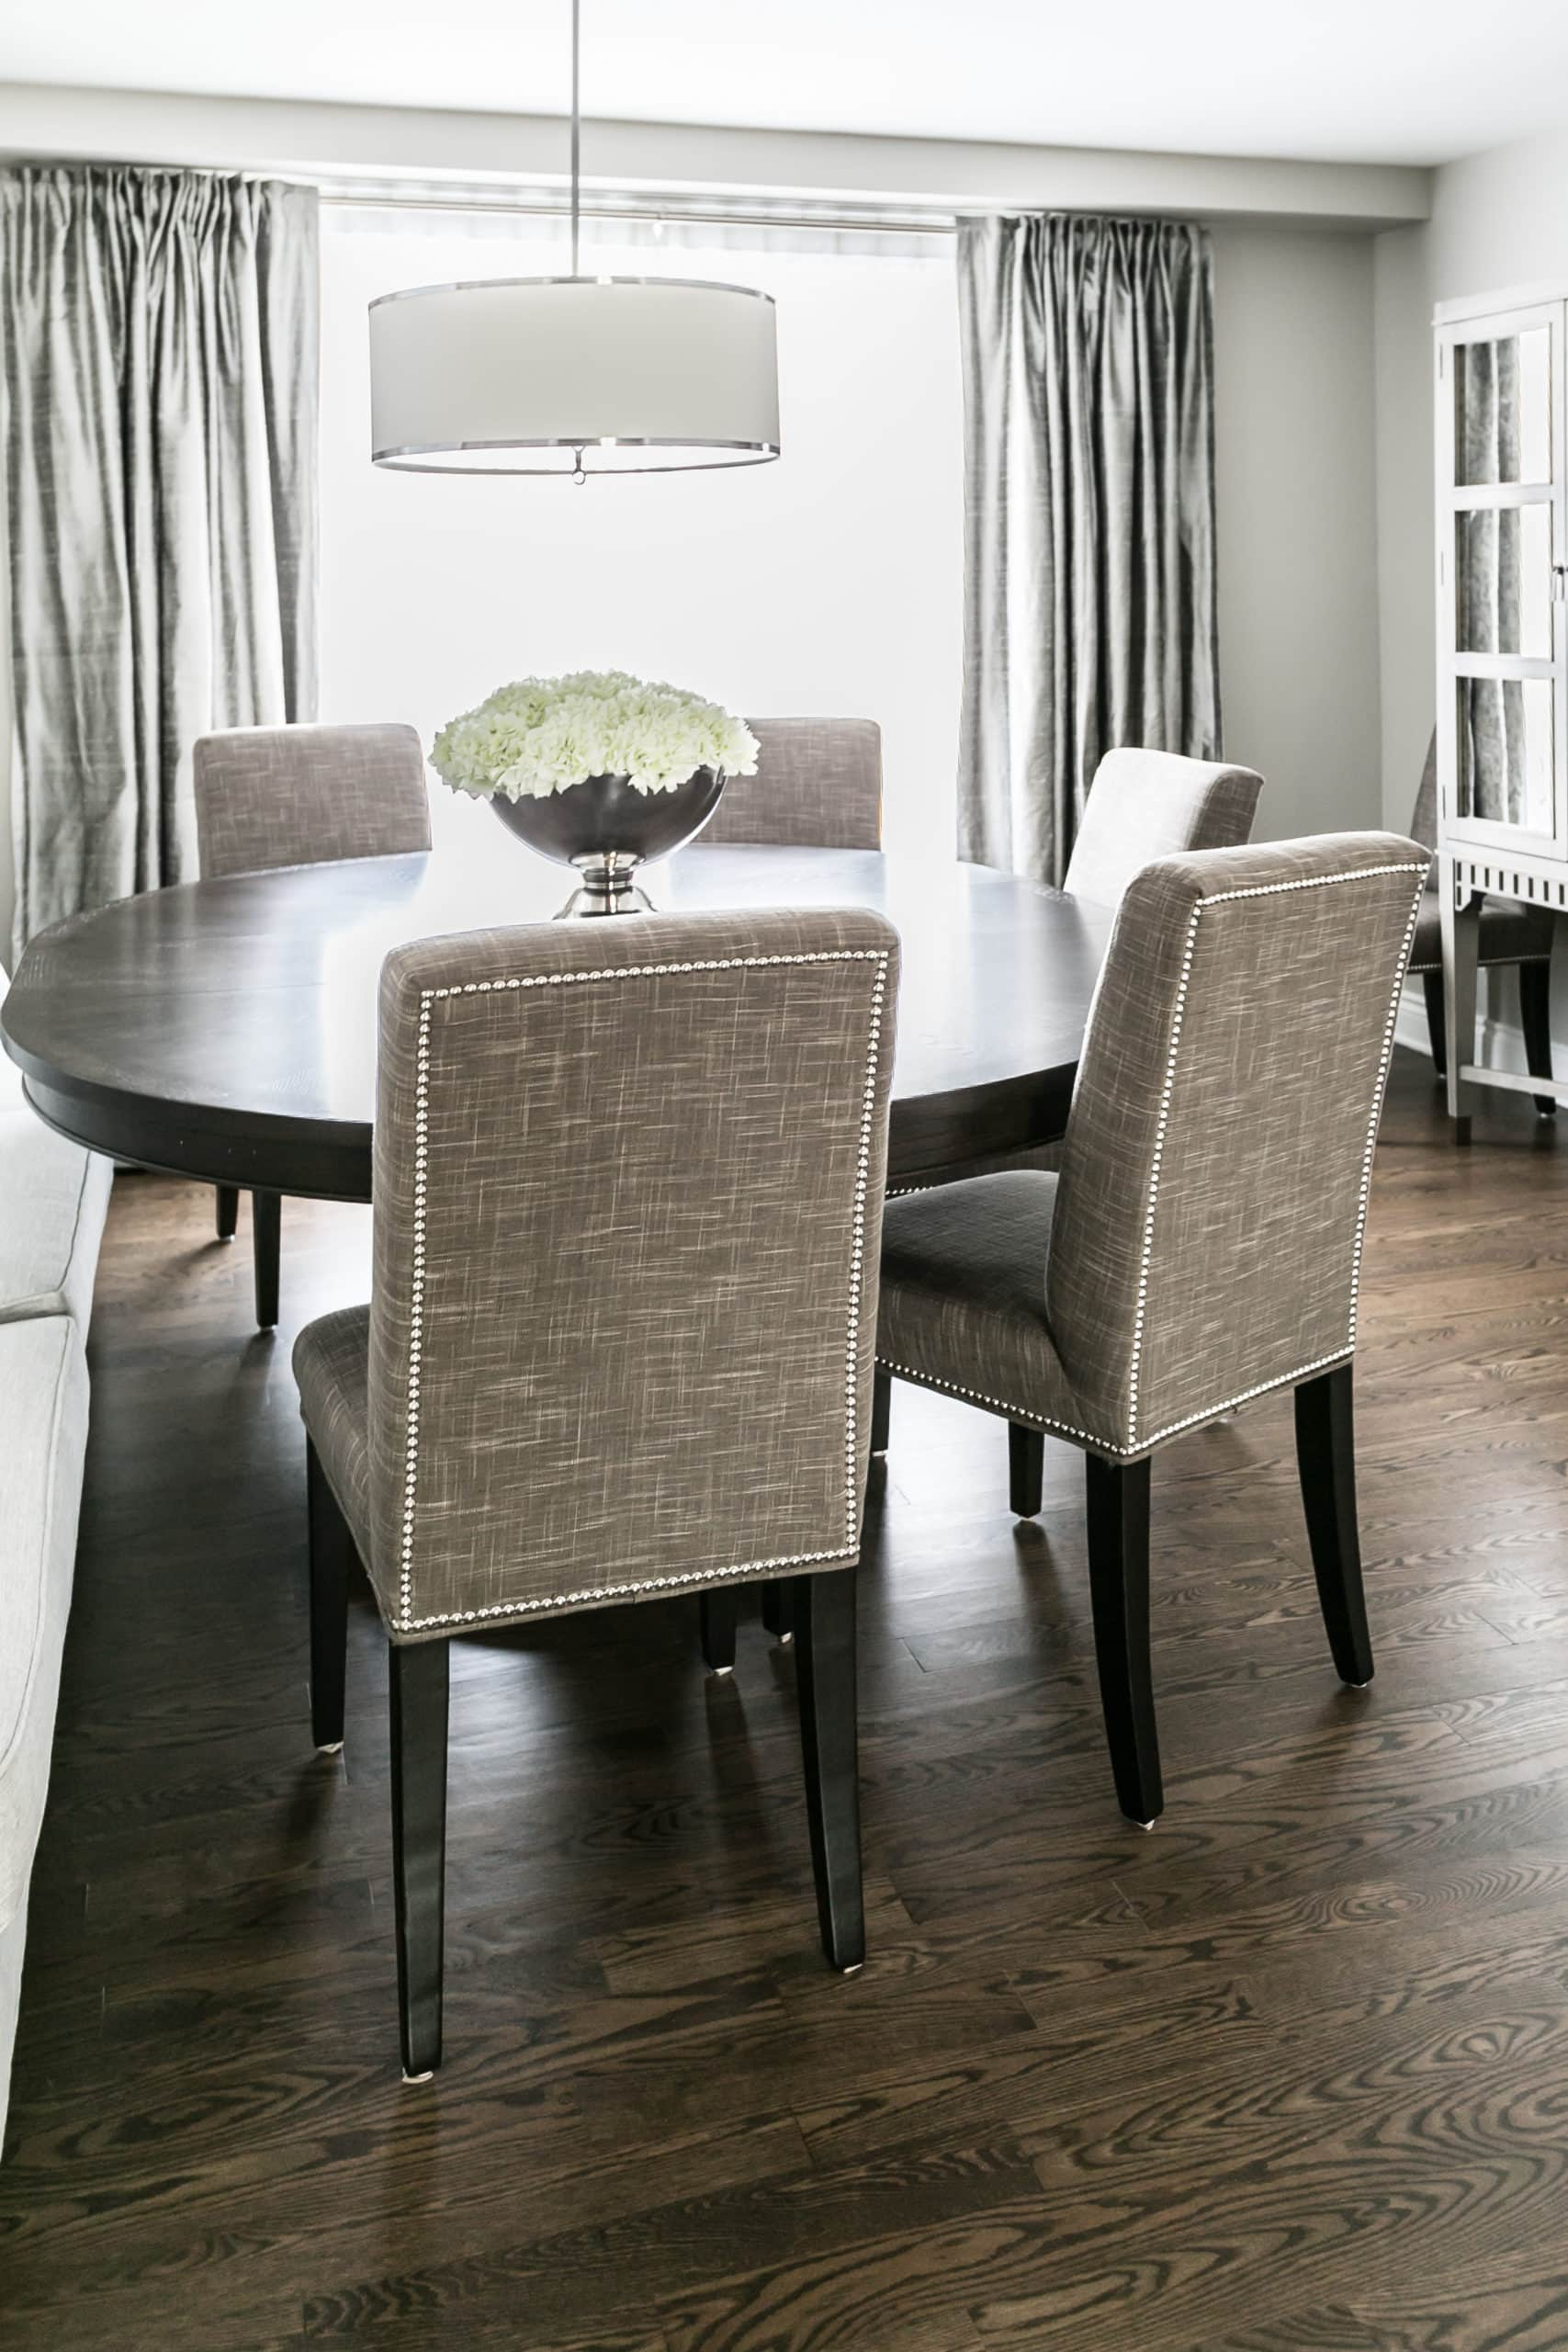 Modern dining room with a round wooden table